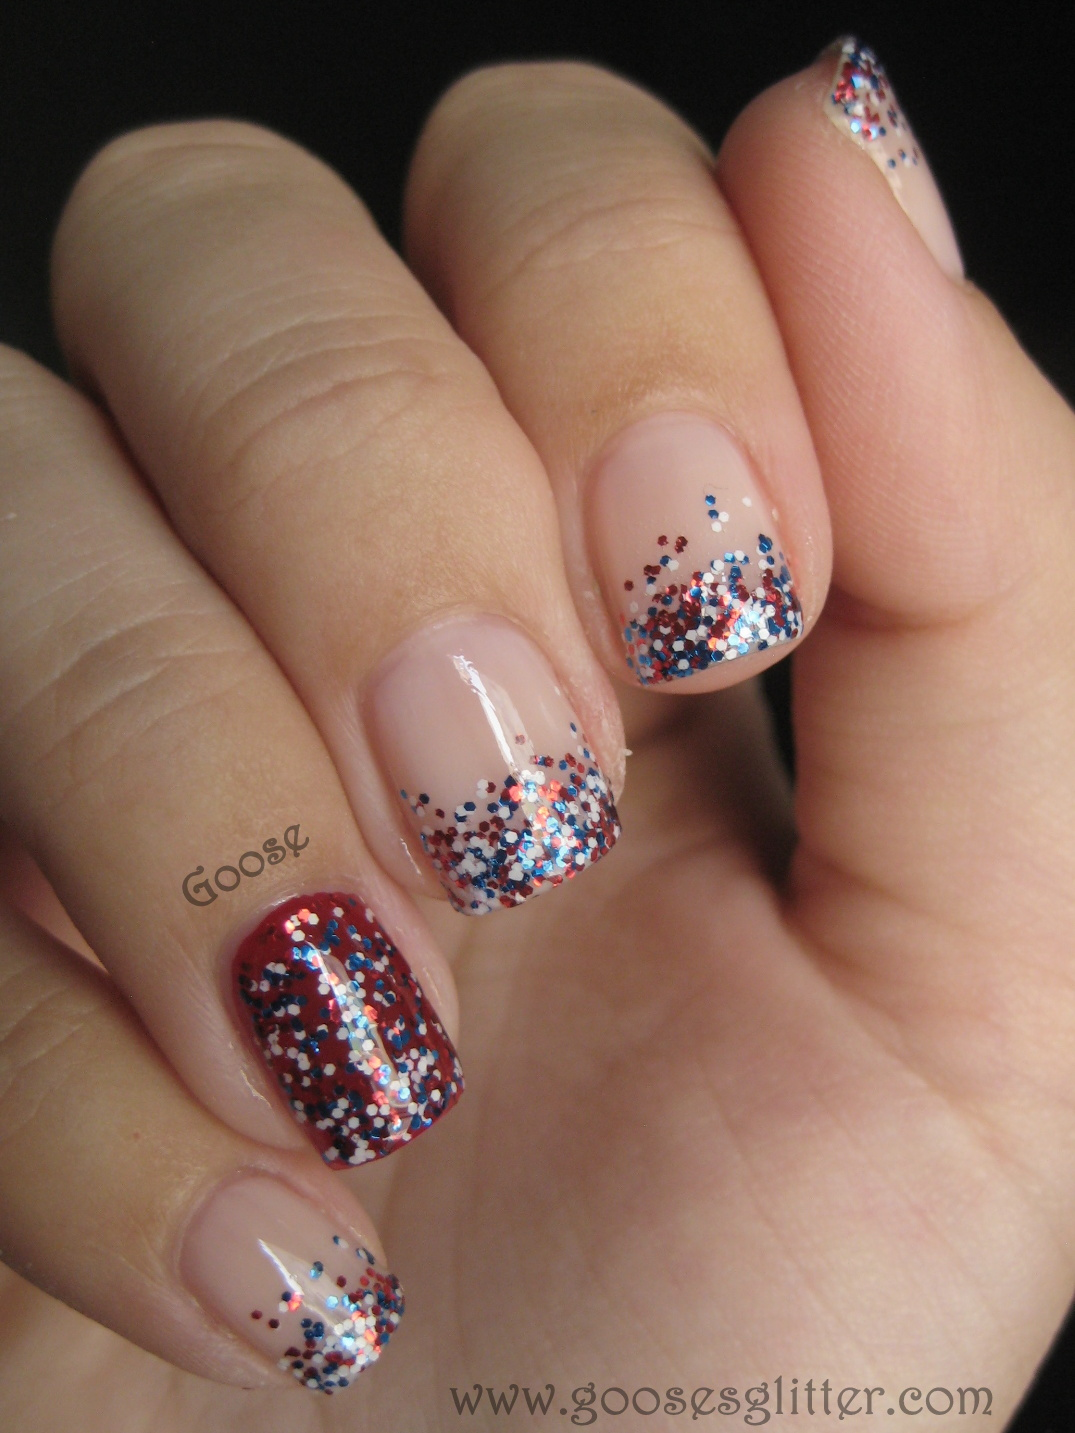 Goose\'s Glitter: 4th of July Nails